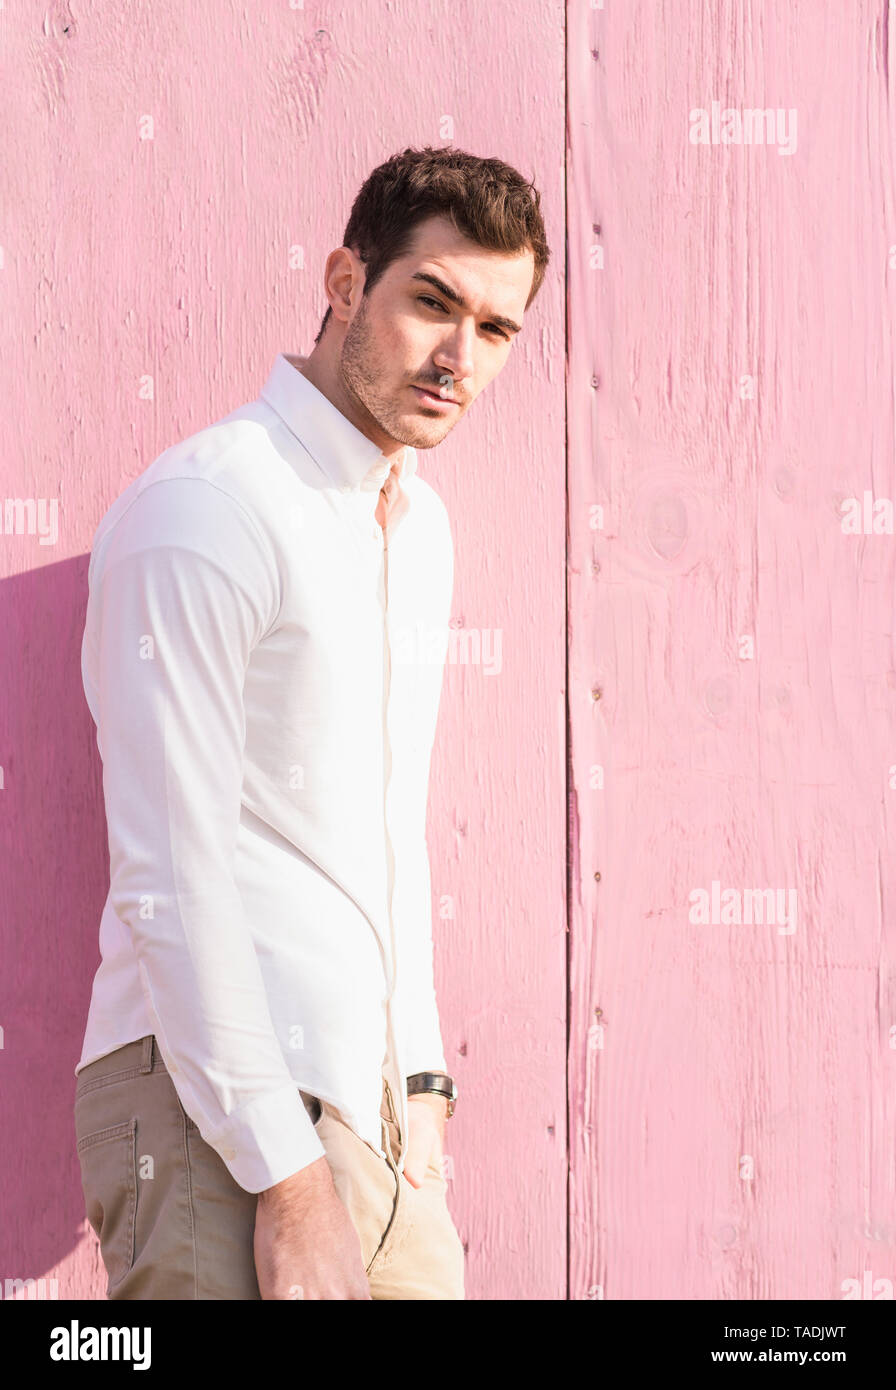 Portrait of young man standing in front of pink wall - Stock Image